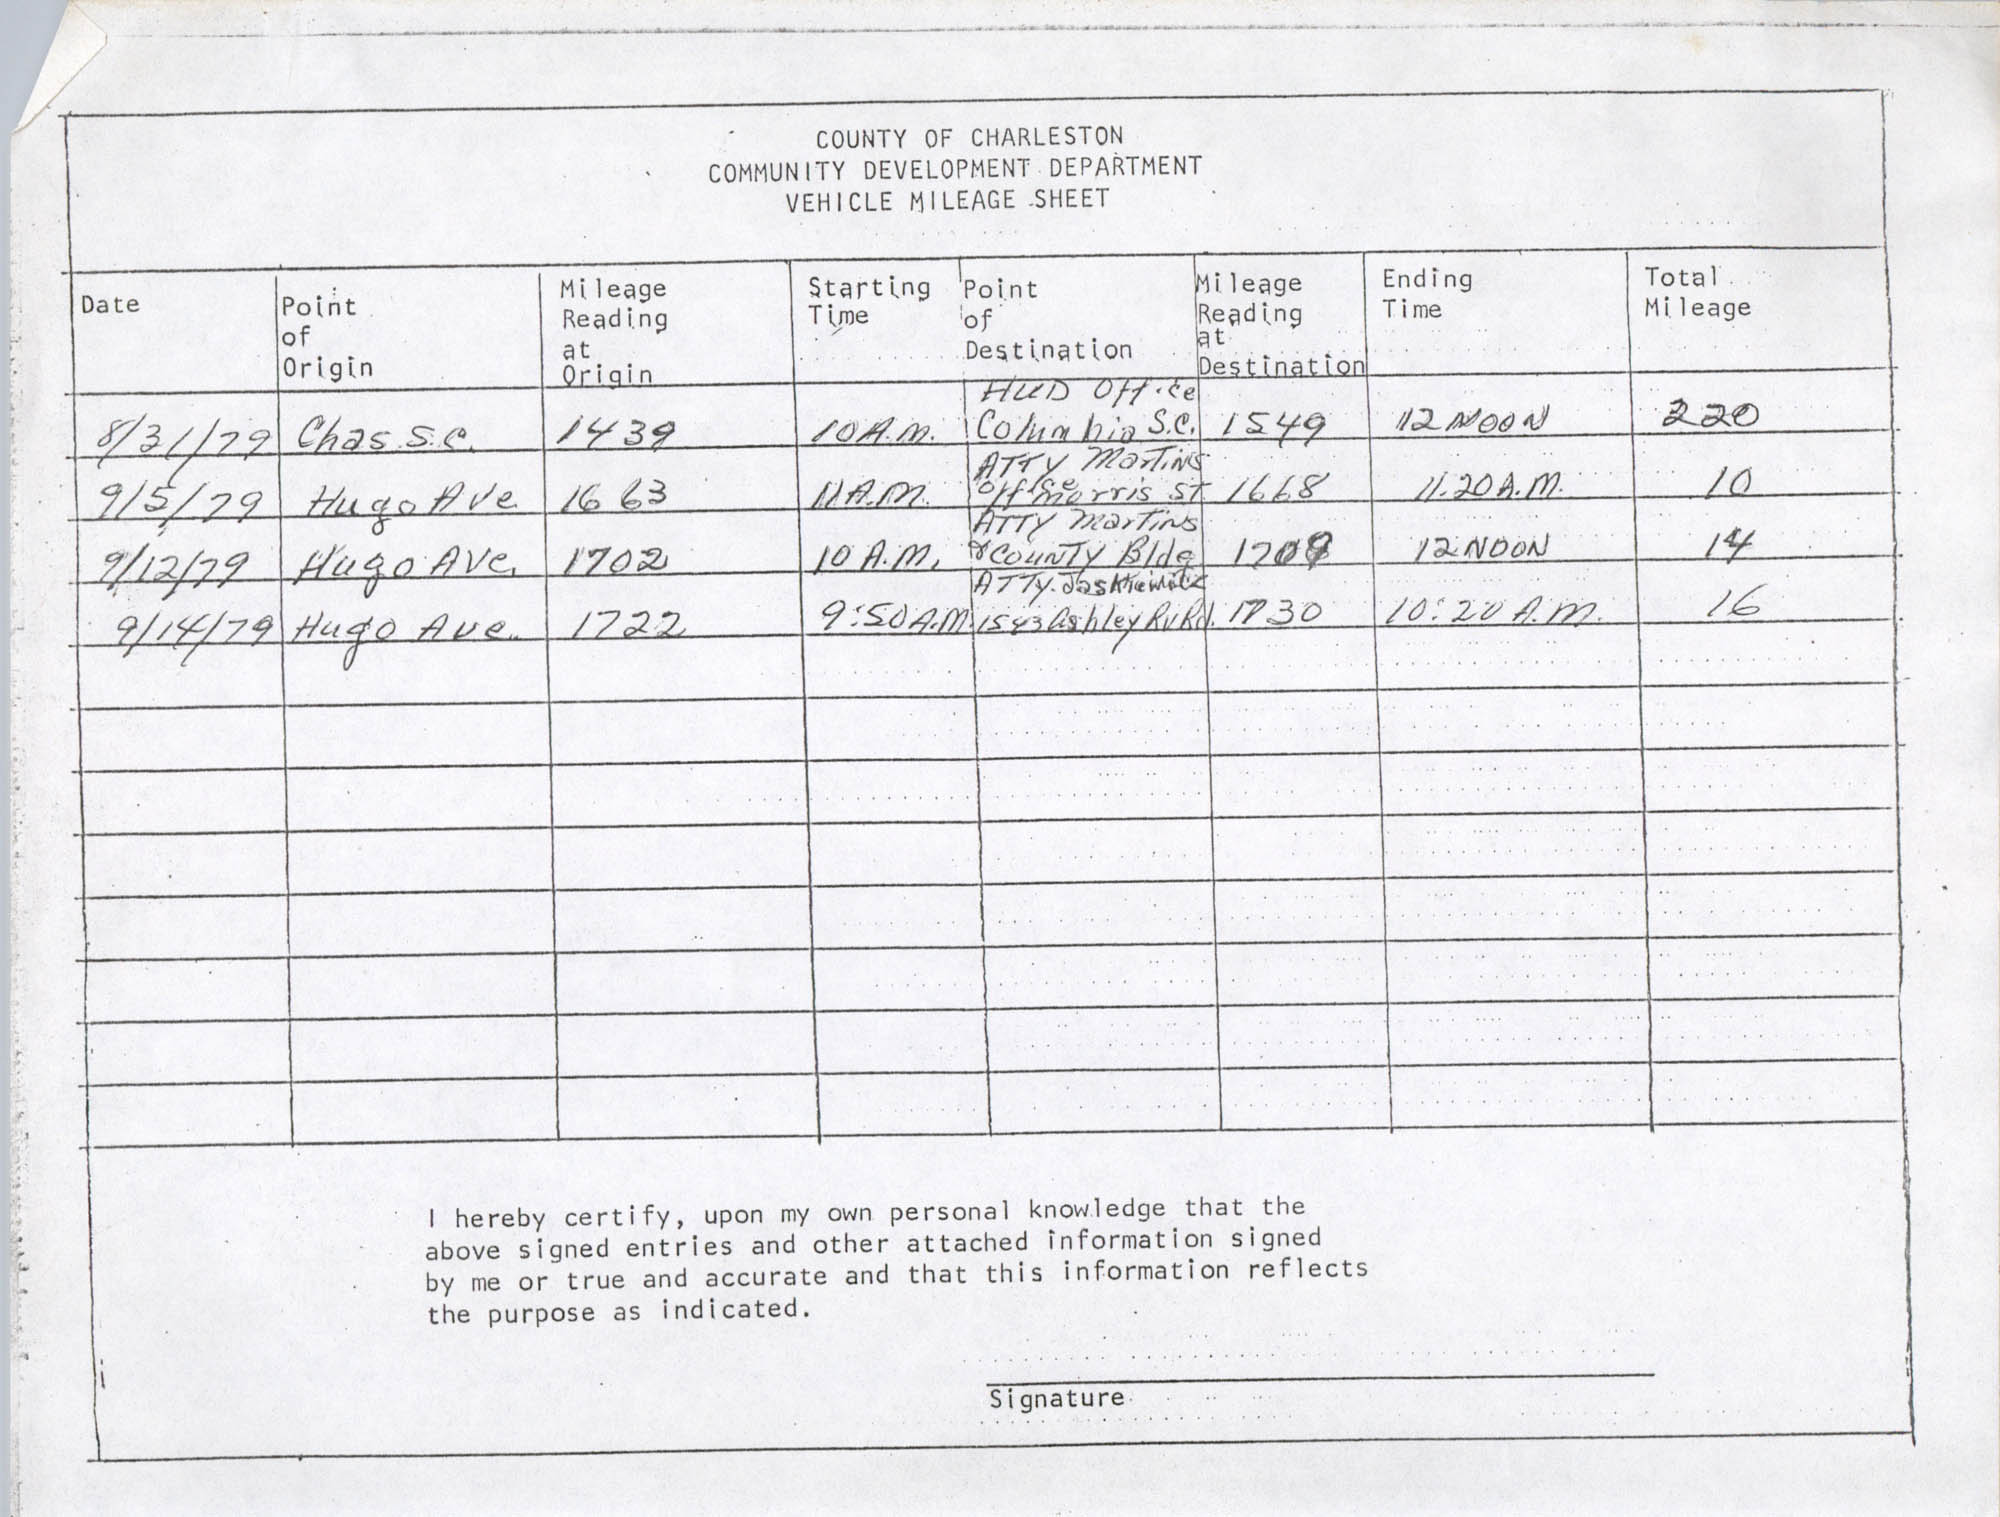 Community Development Department Vehicle Mileage Sheet, Page 6